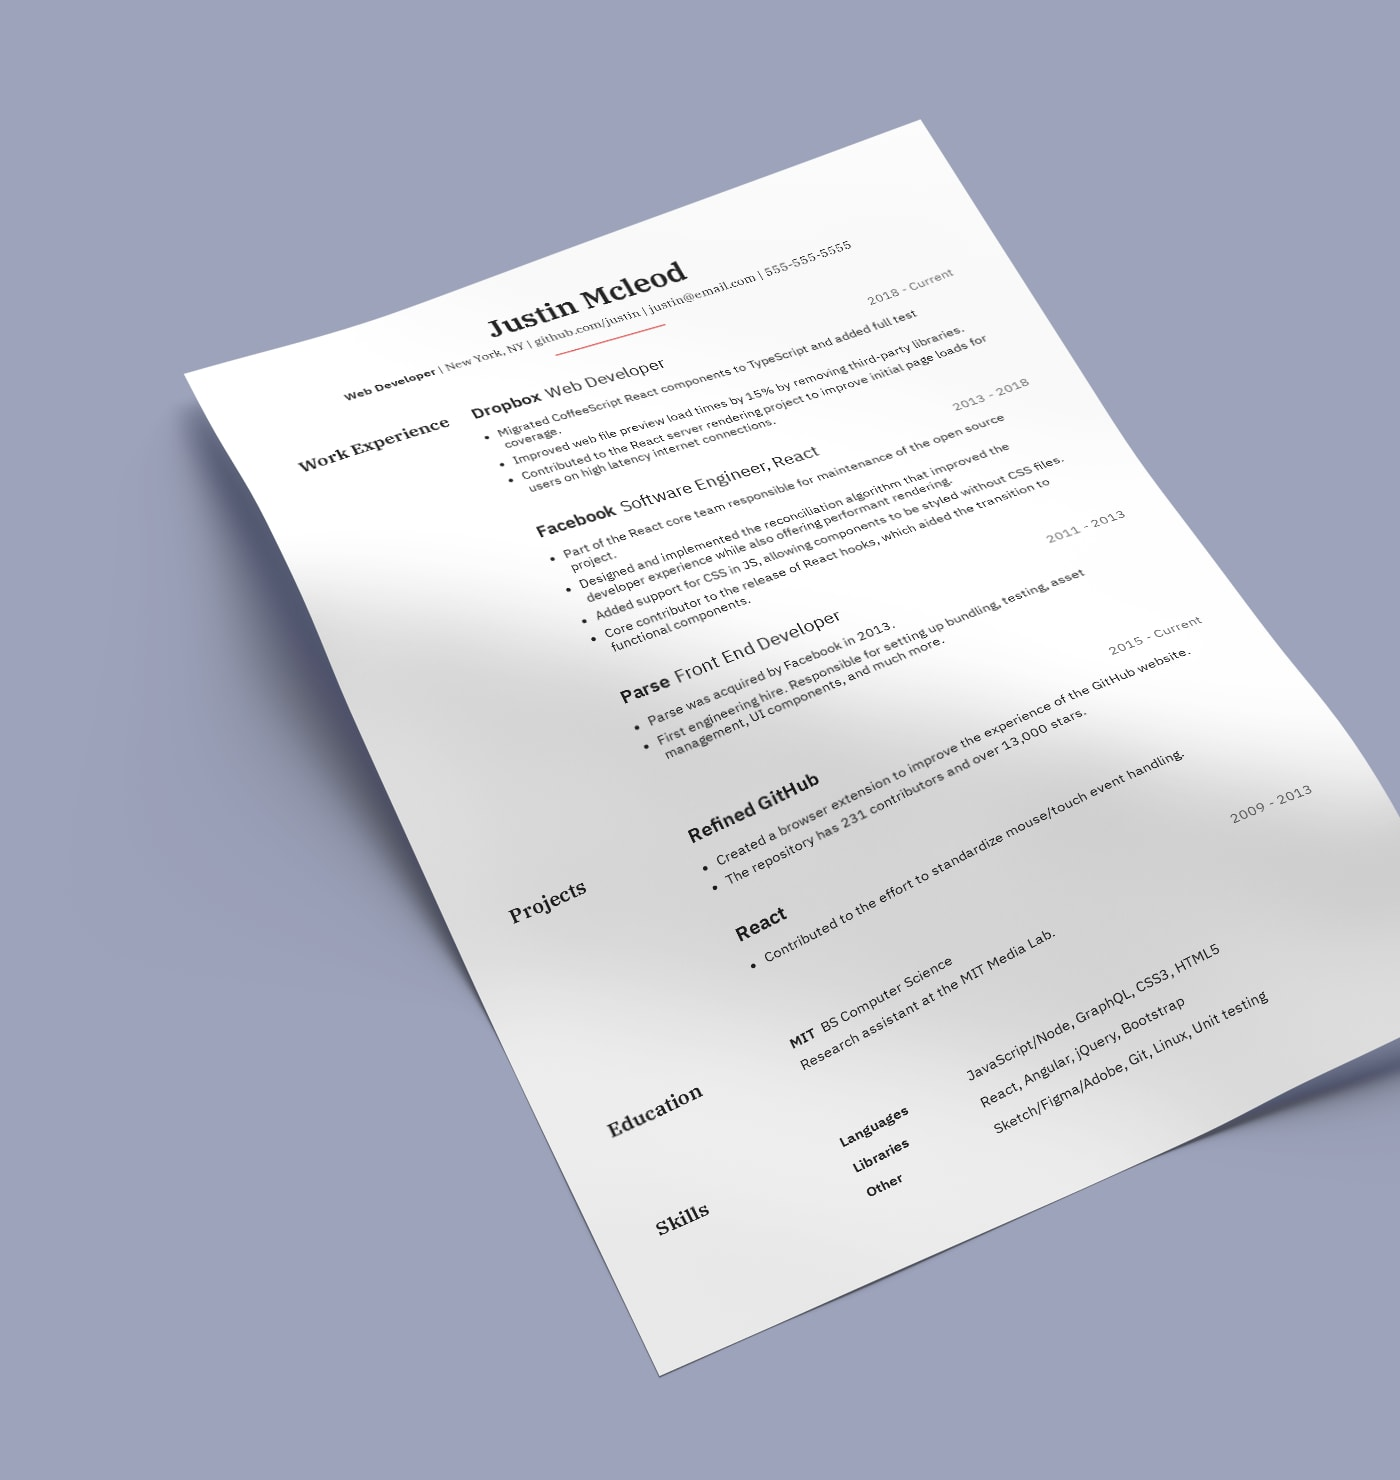 Venables professional resume template built with Standard Resume builder.